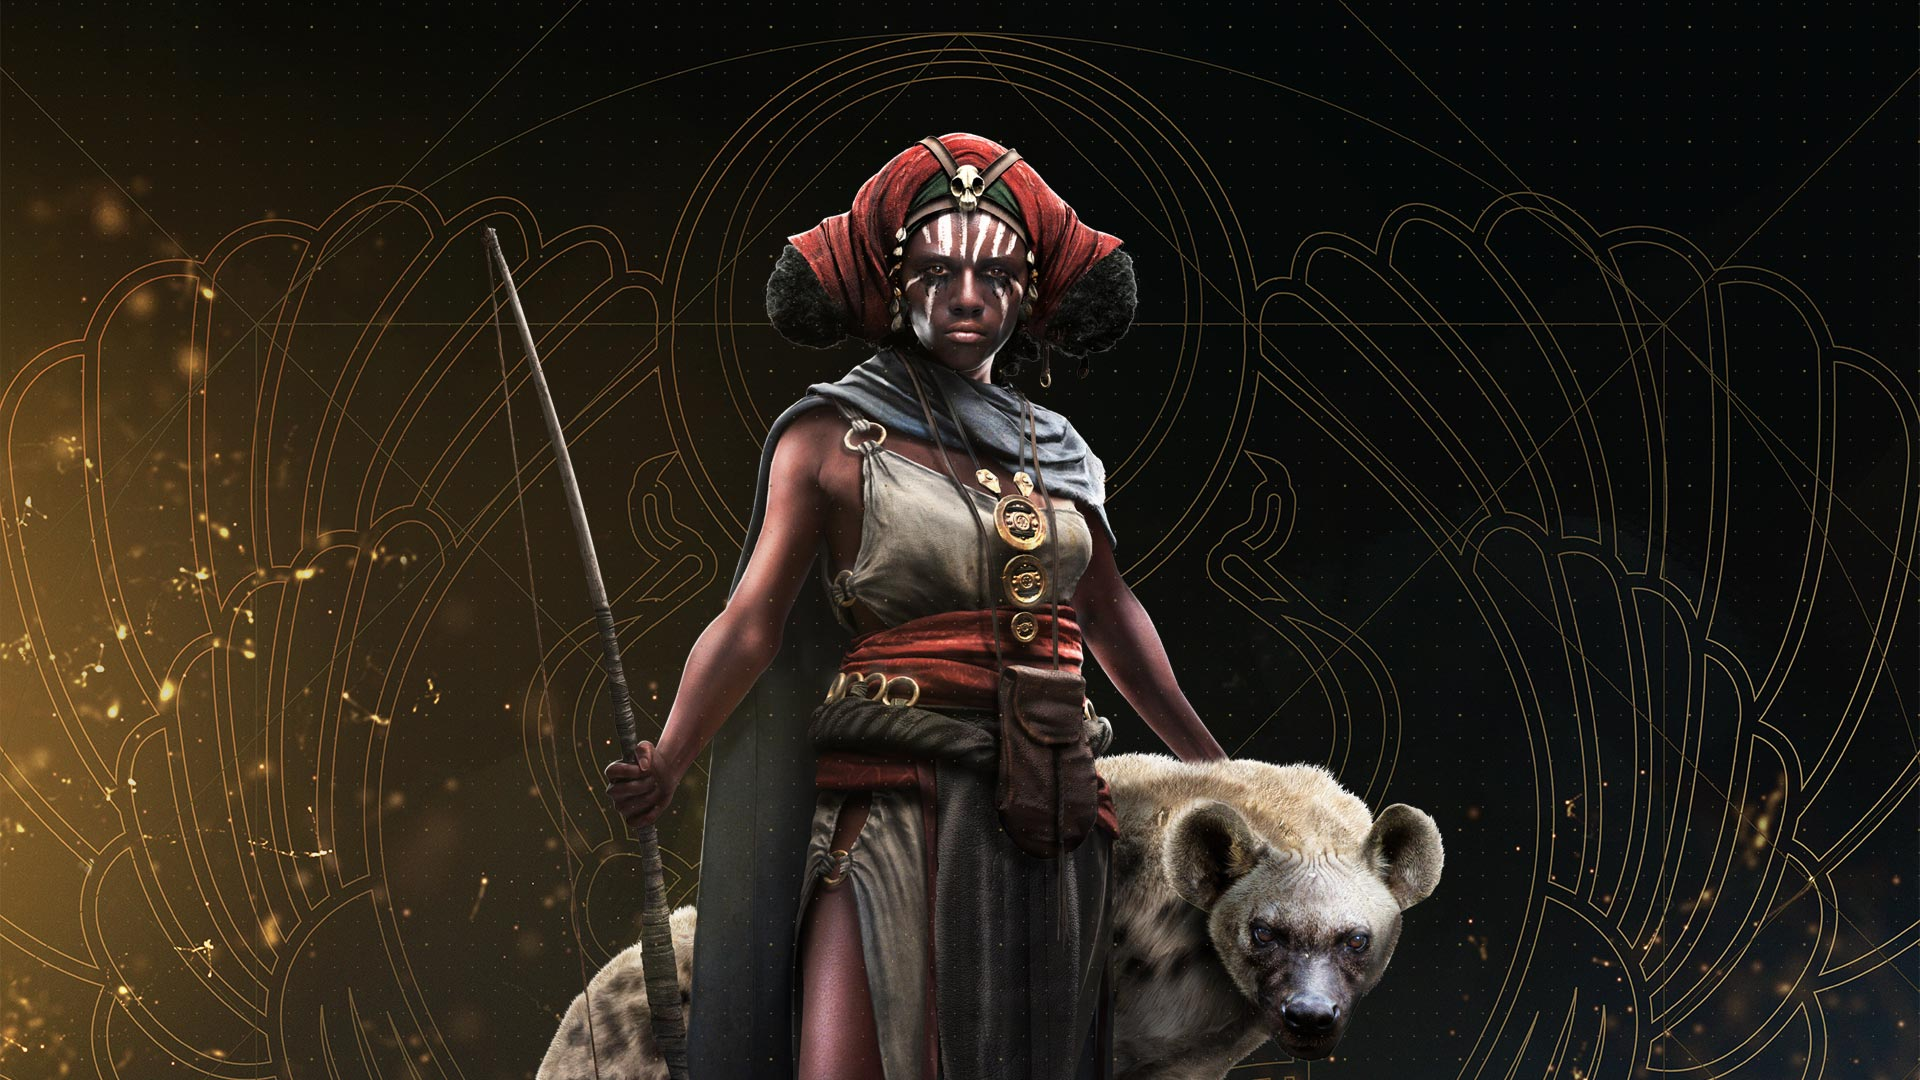 Assassins Creed Lucy Thorne Porn showcase :: assassin's creed origins